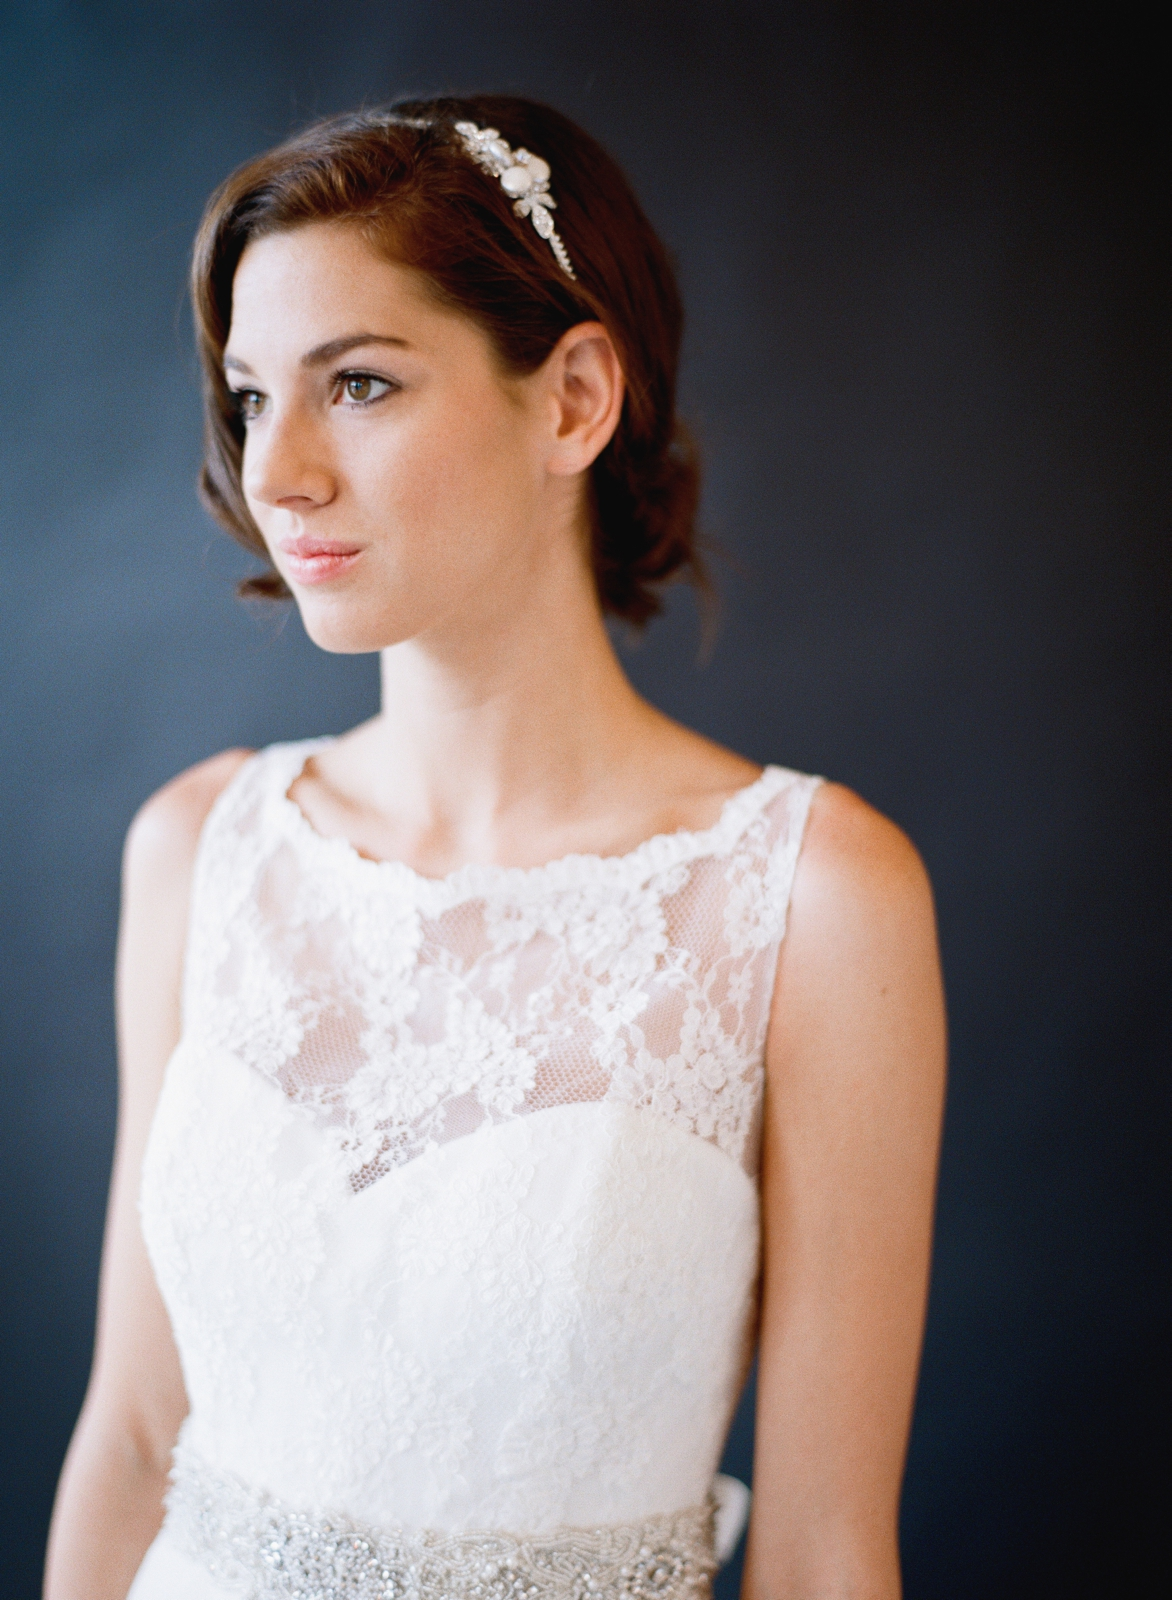 Wedding Headband | West Palm Beach Wedding Photographer | Shannon Griffin 6.jpg